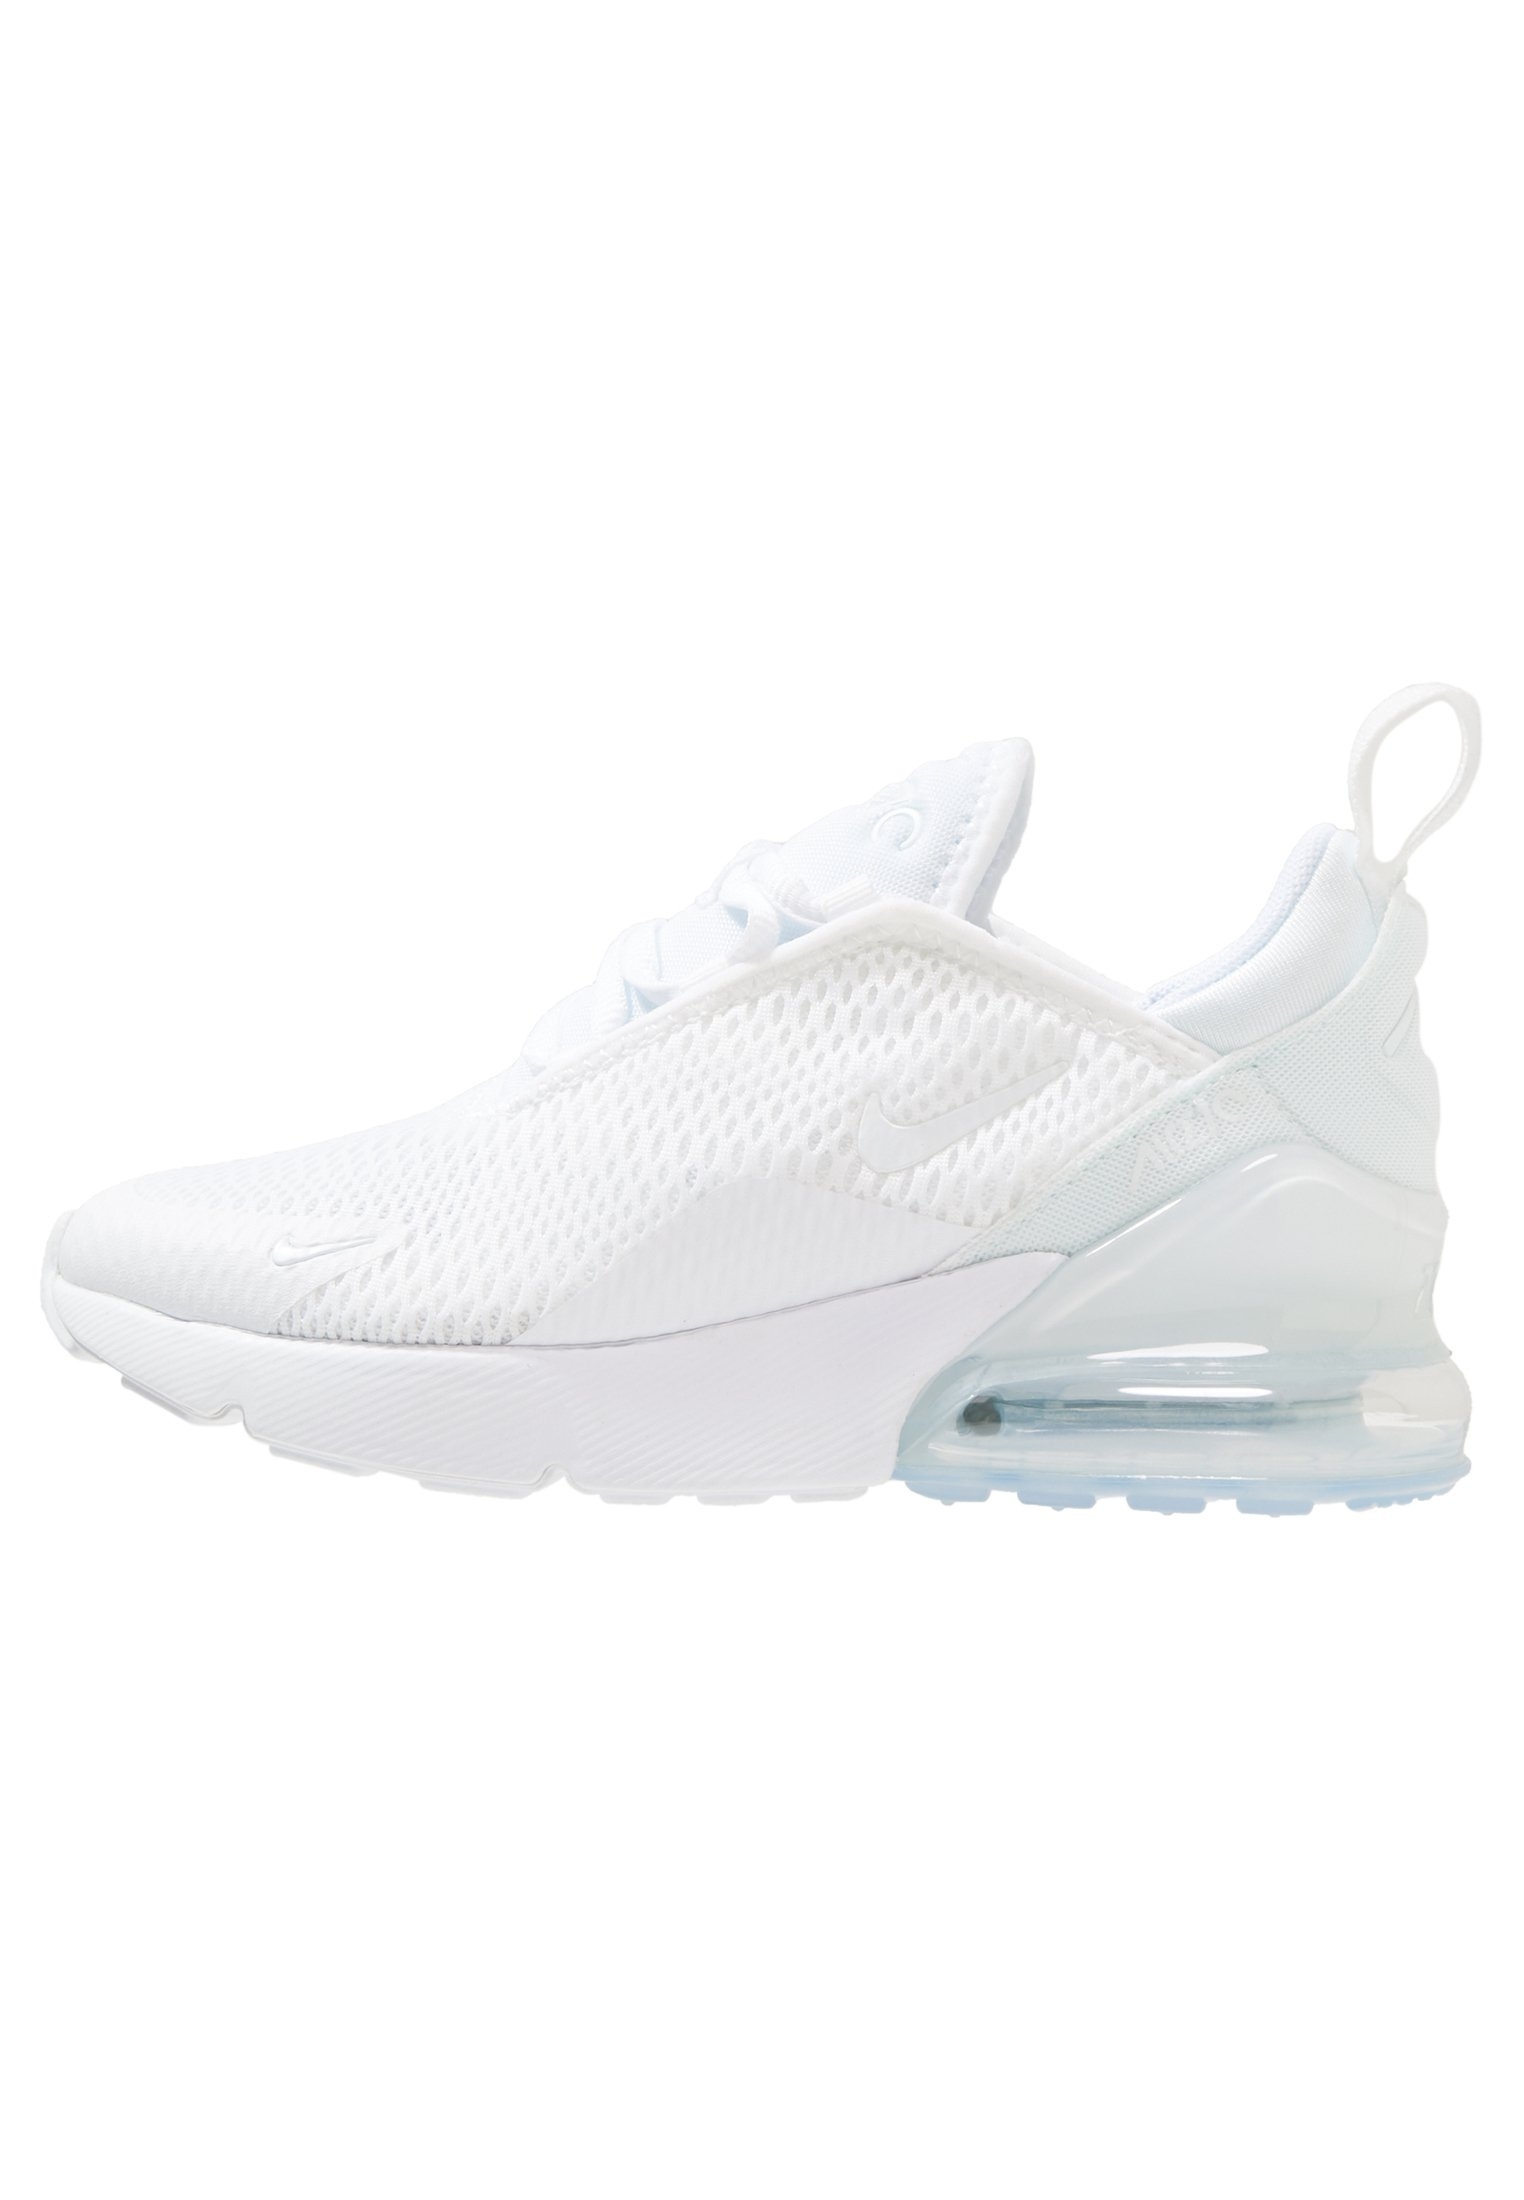 AIR MAX 270 Sneakers whitemtlc silver